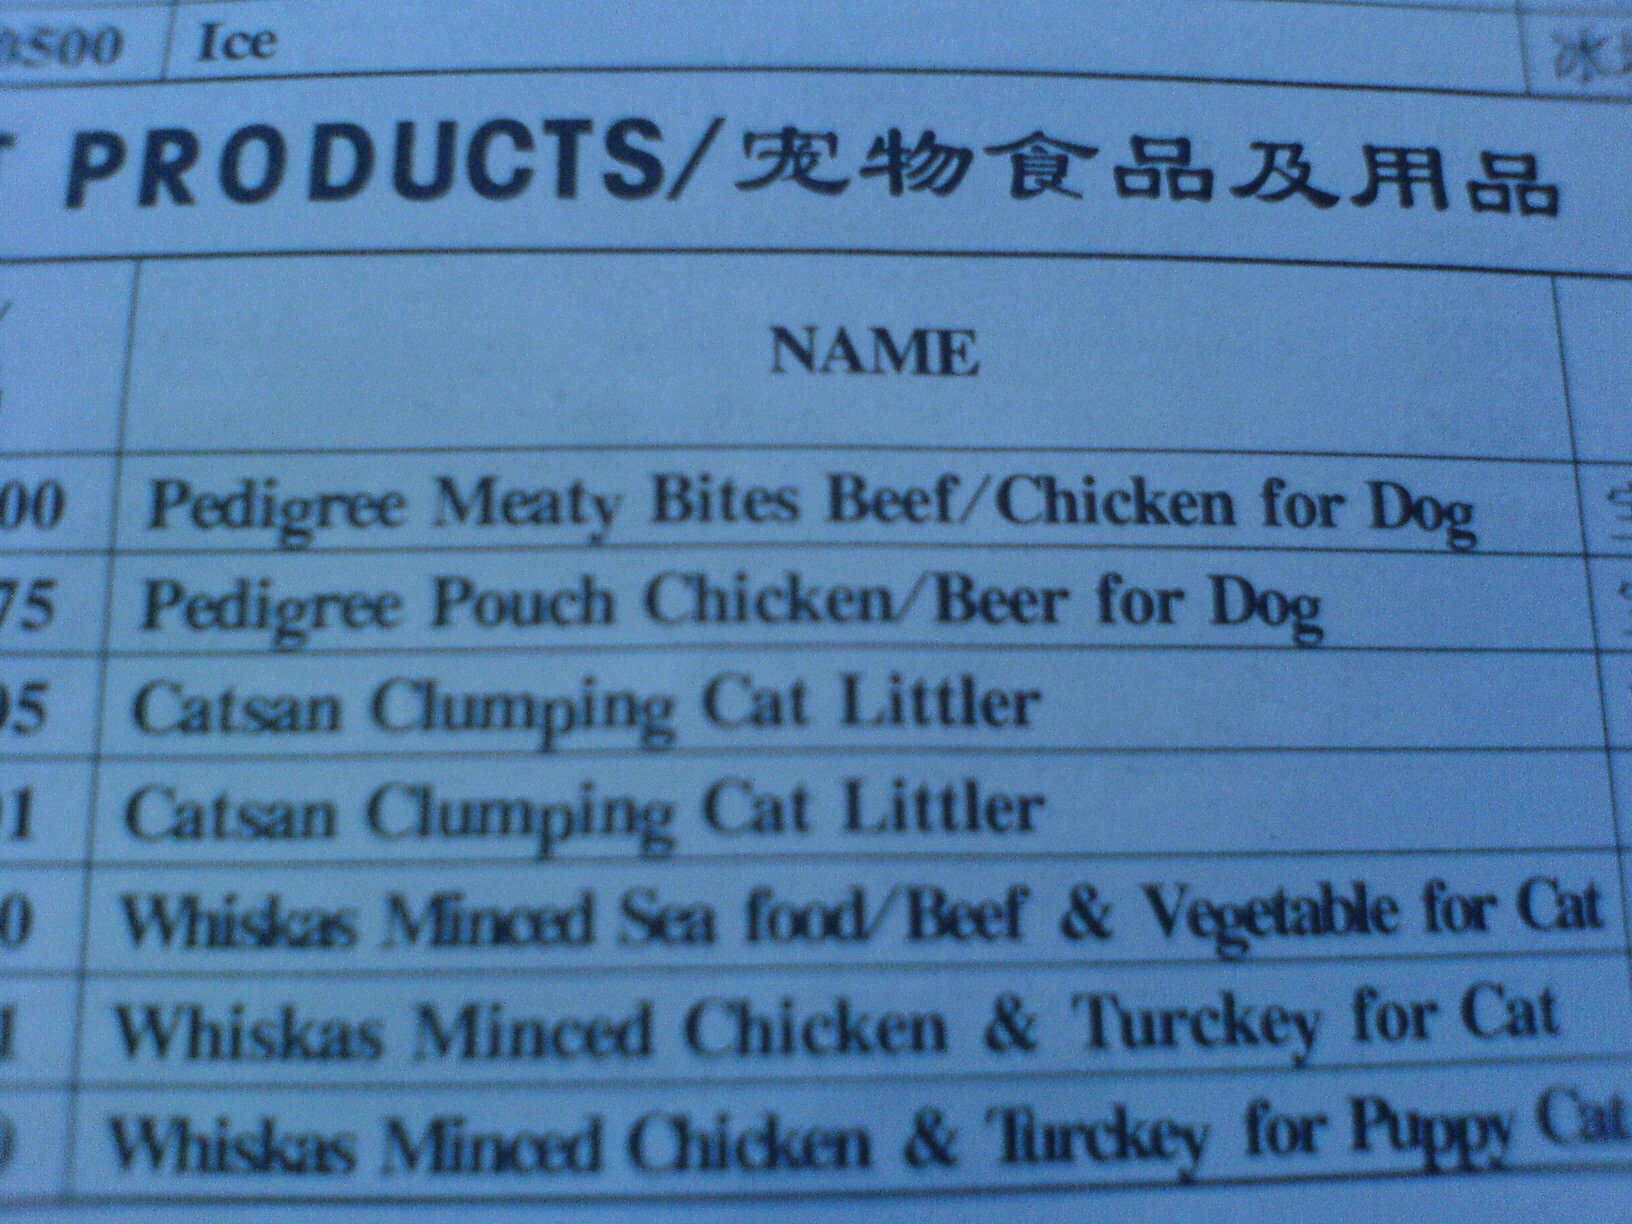 I'll have what the dog is having!